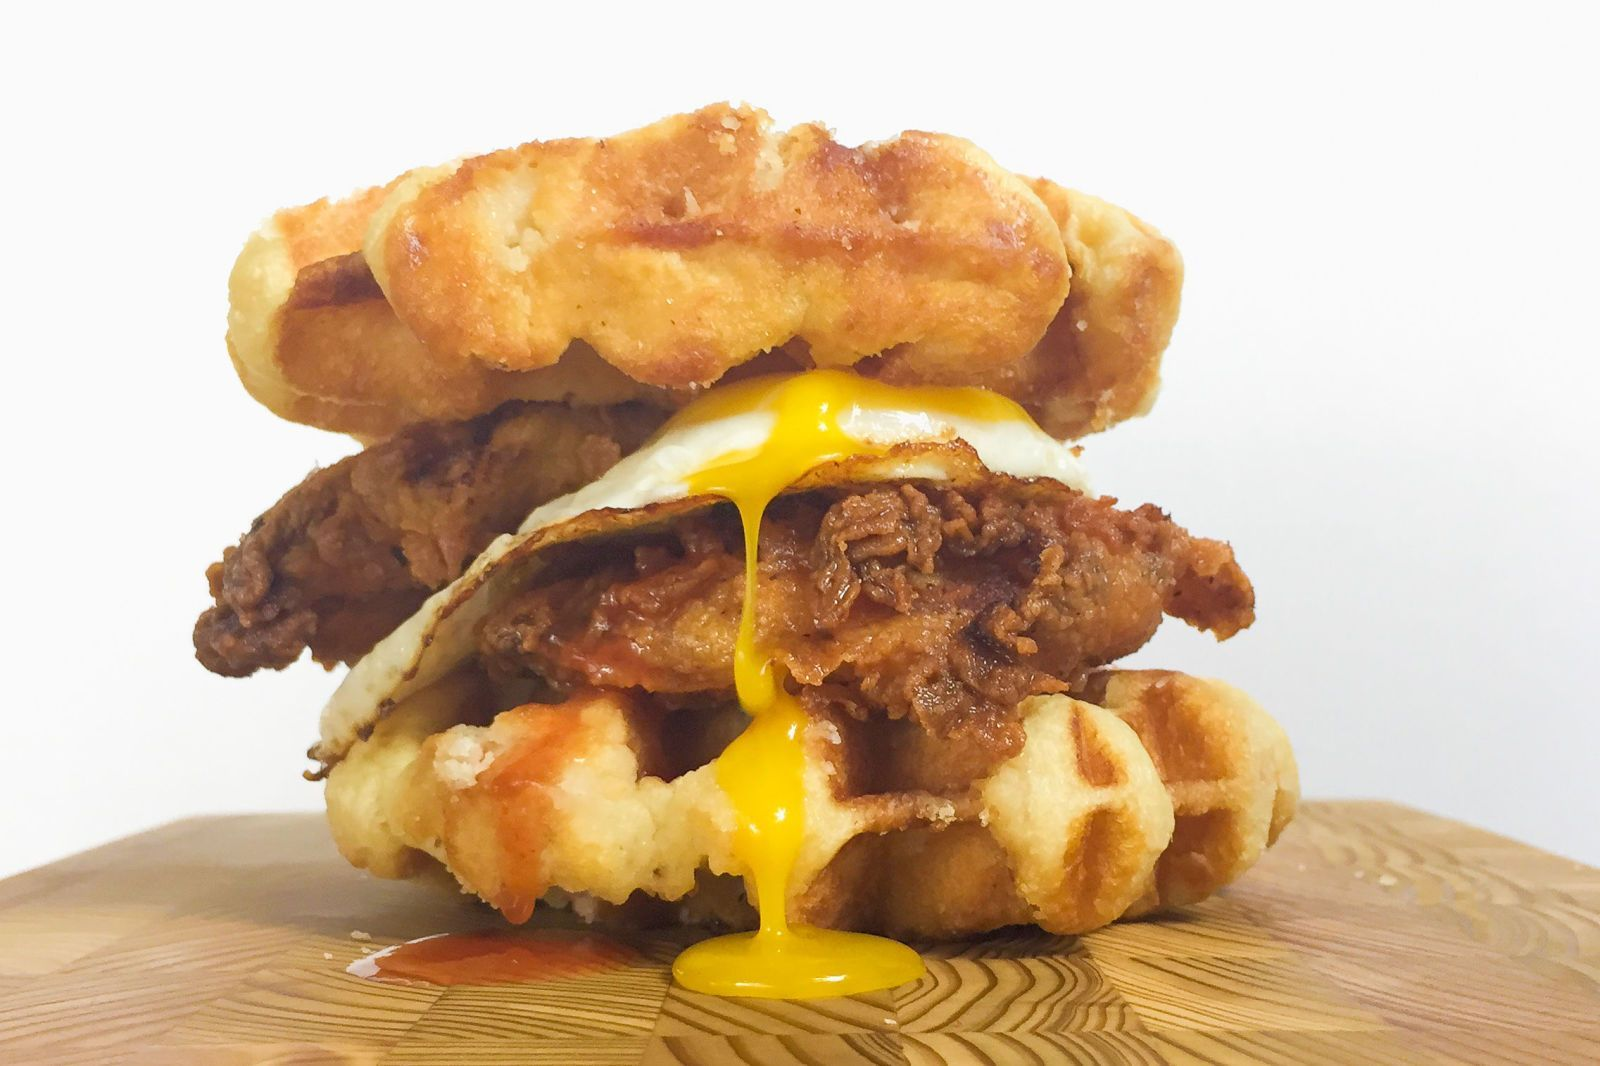 Insane Breakfast Sandwiches to Kick Off Your Day Who needs buns when you've got waffles? Get the recipe: Chicken and Waffles Breakfast Sandwich   - Who needs buns when you've got waffles? Get the recipe: Chicken and Waffles Breakfast Sandwich   -